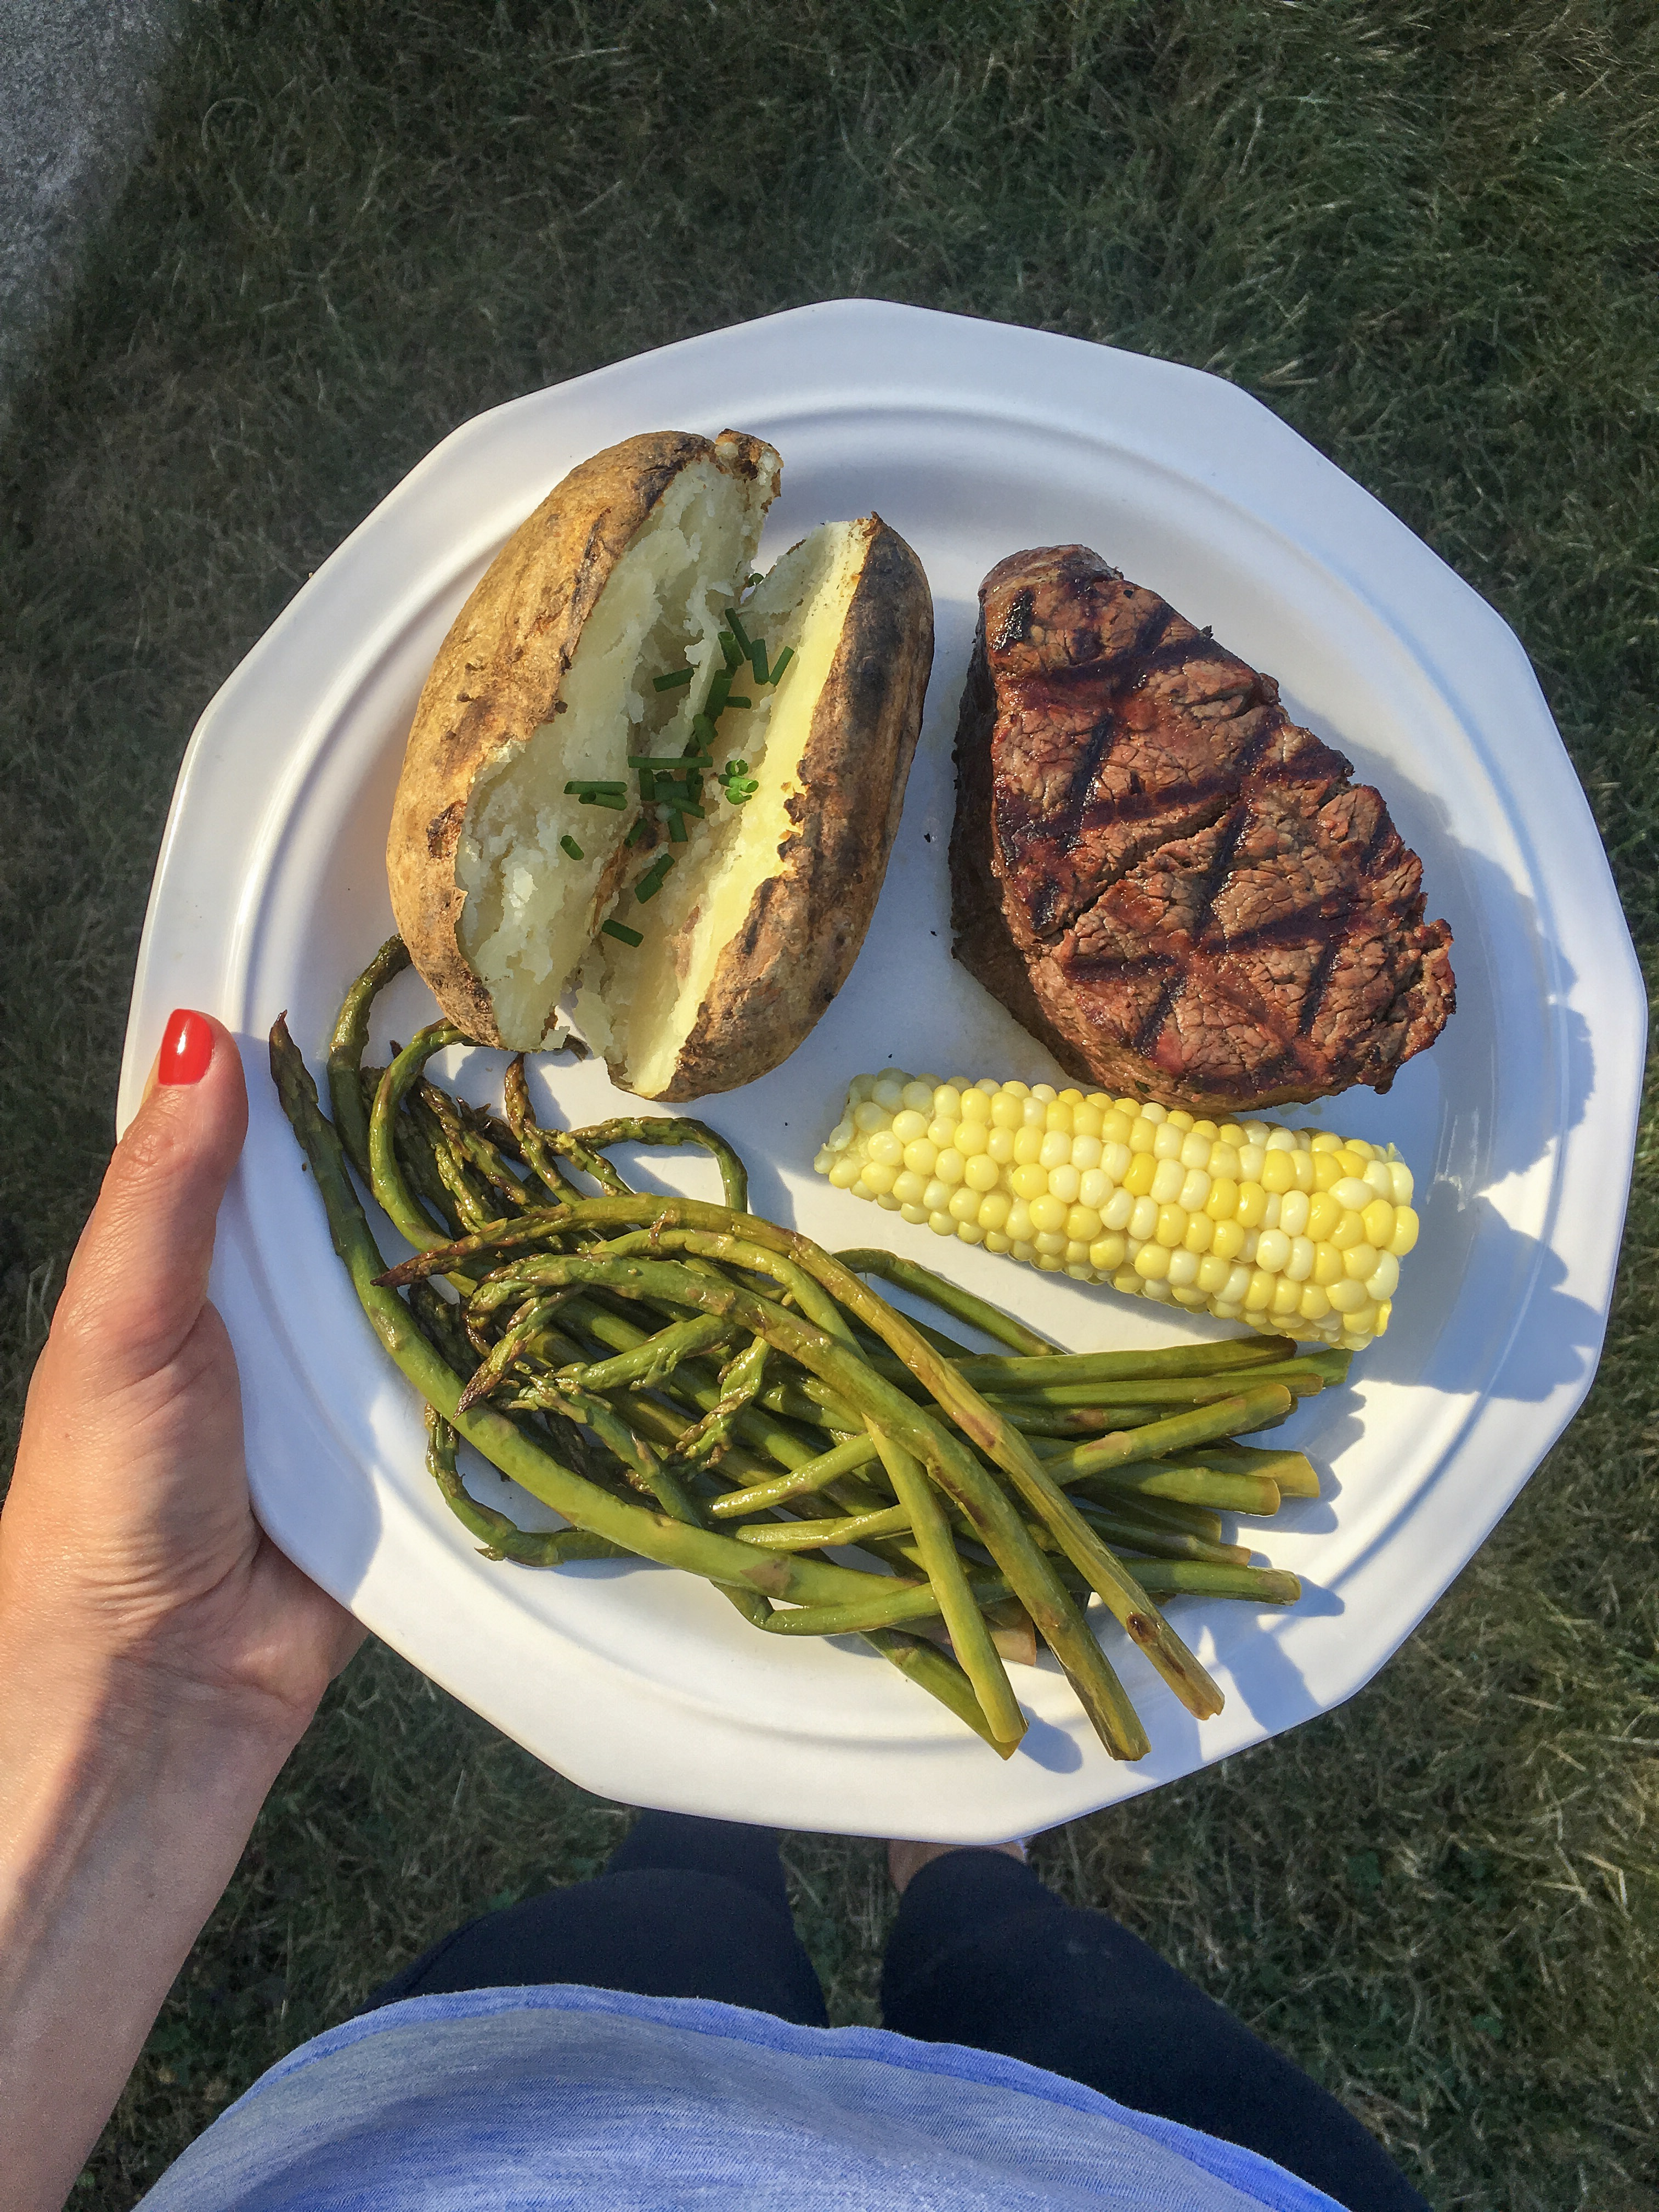 Giant Eagle Steak, Potatoes, and Asparagus